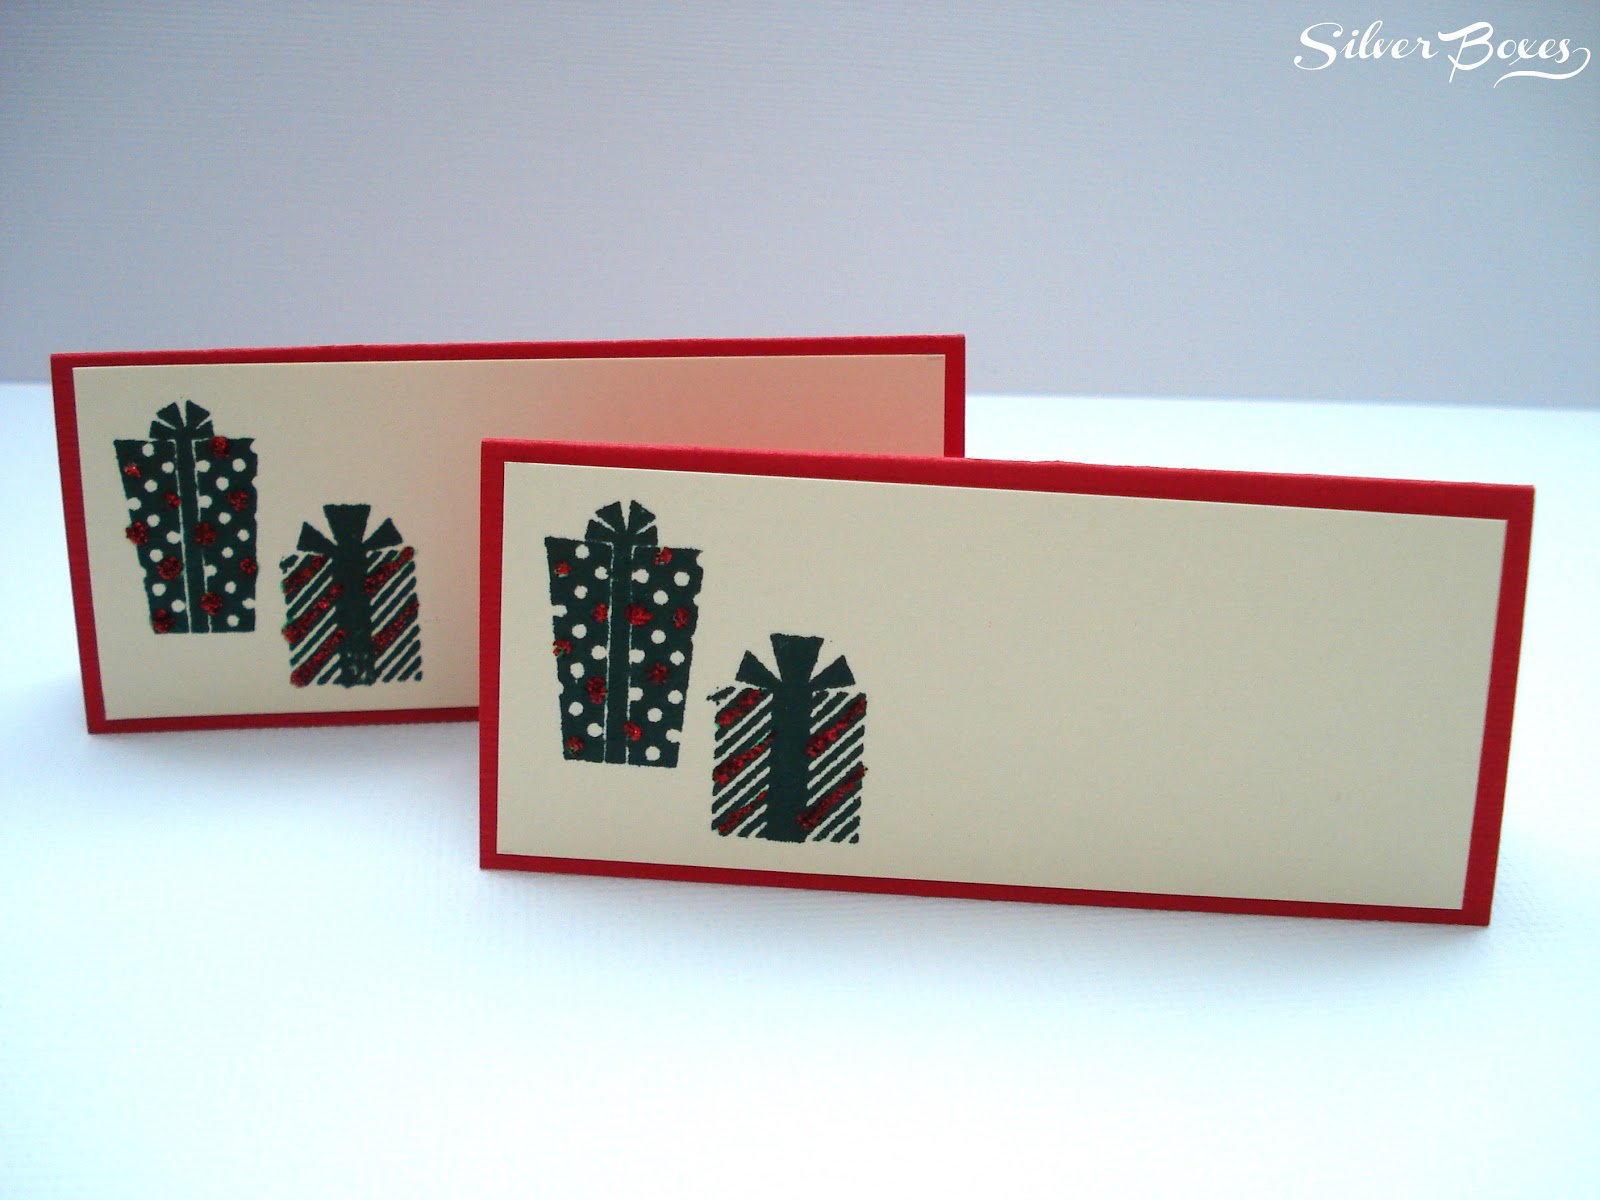 silver boxes christmas place cards